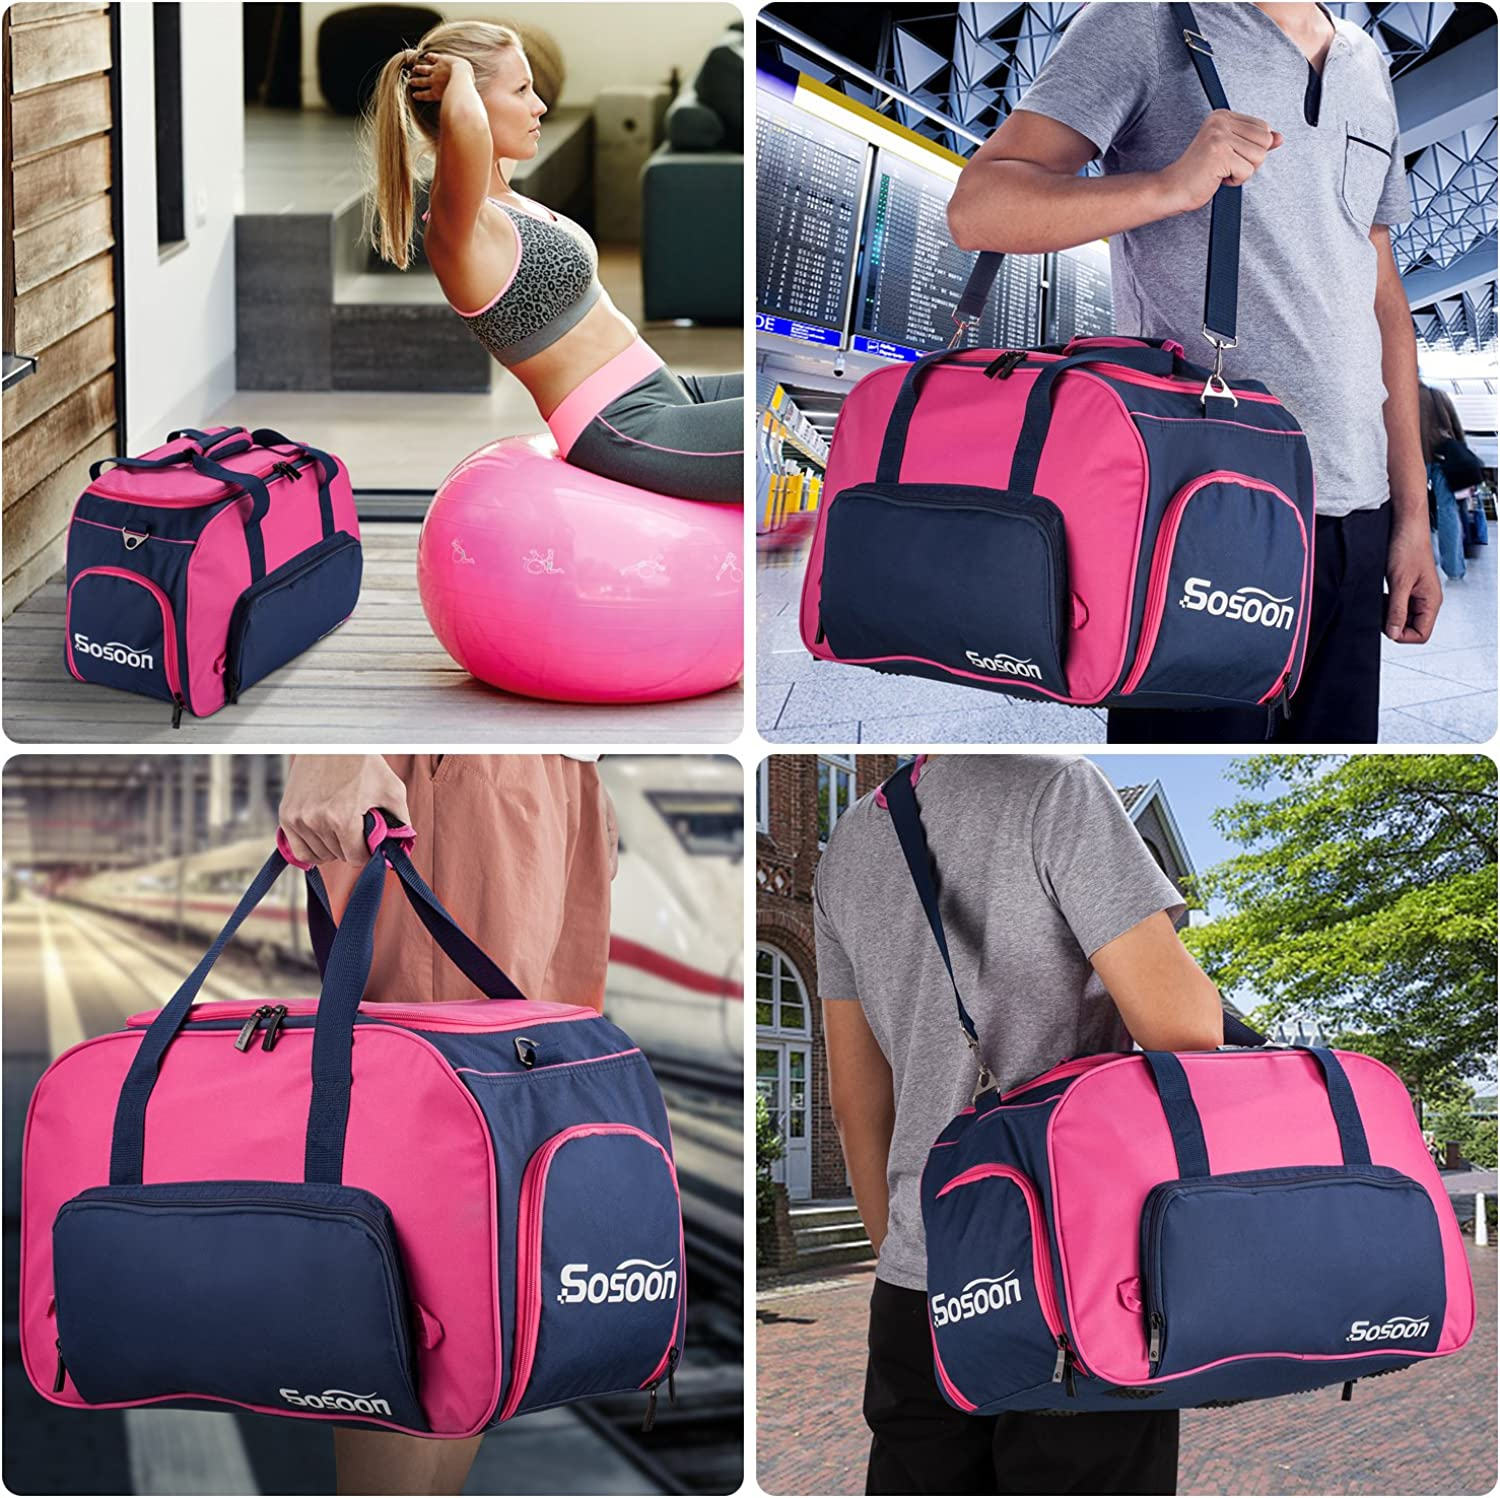 Duffel Bag Sosoon Folding Storage Bag for Traveling and Business Trip Sports Gym Bag